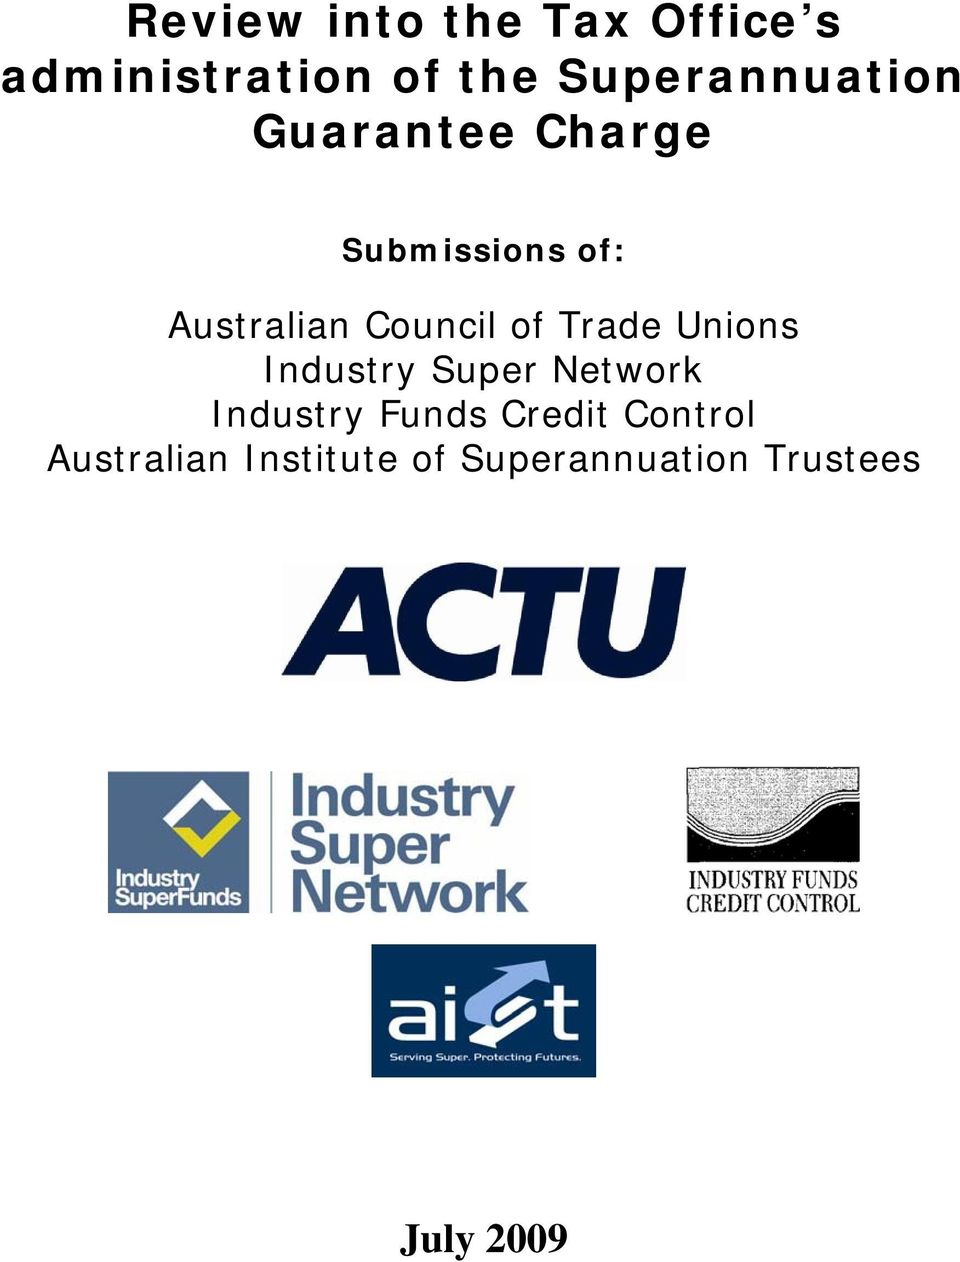 Council of Trade Unions Industry Super Network Industry